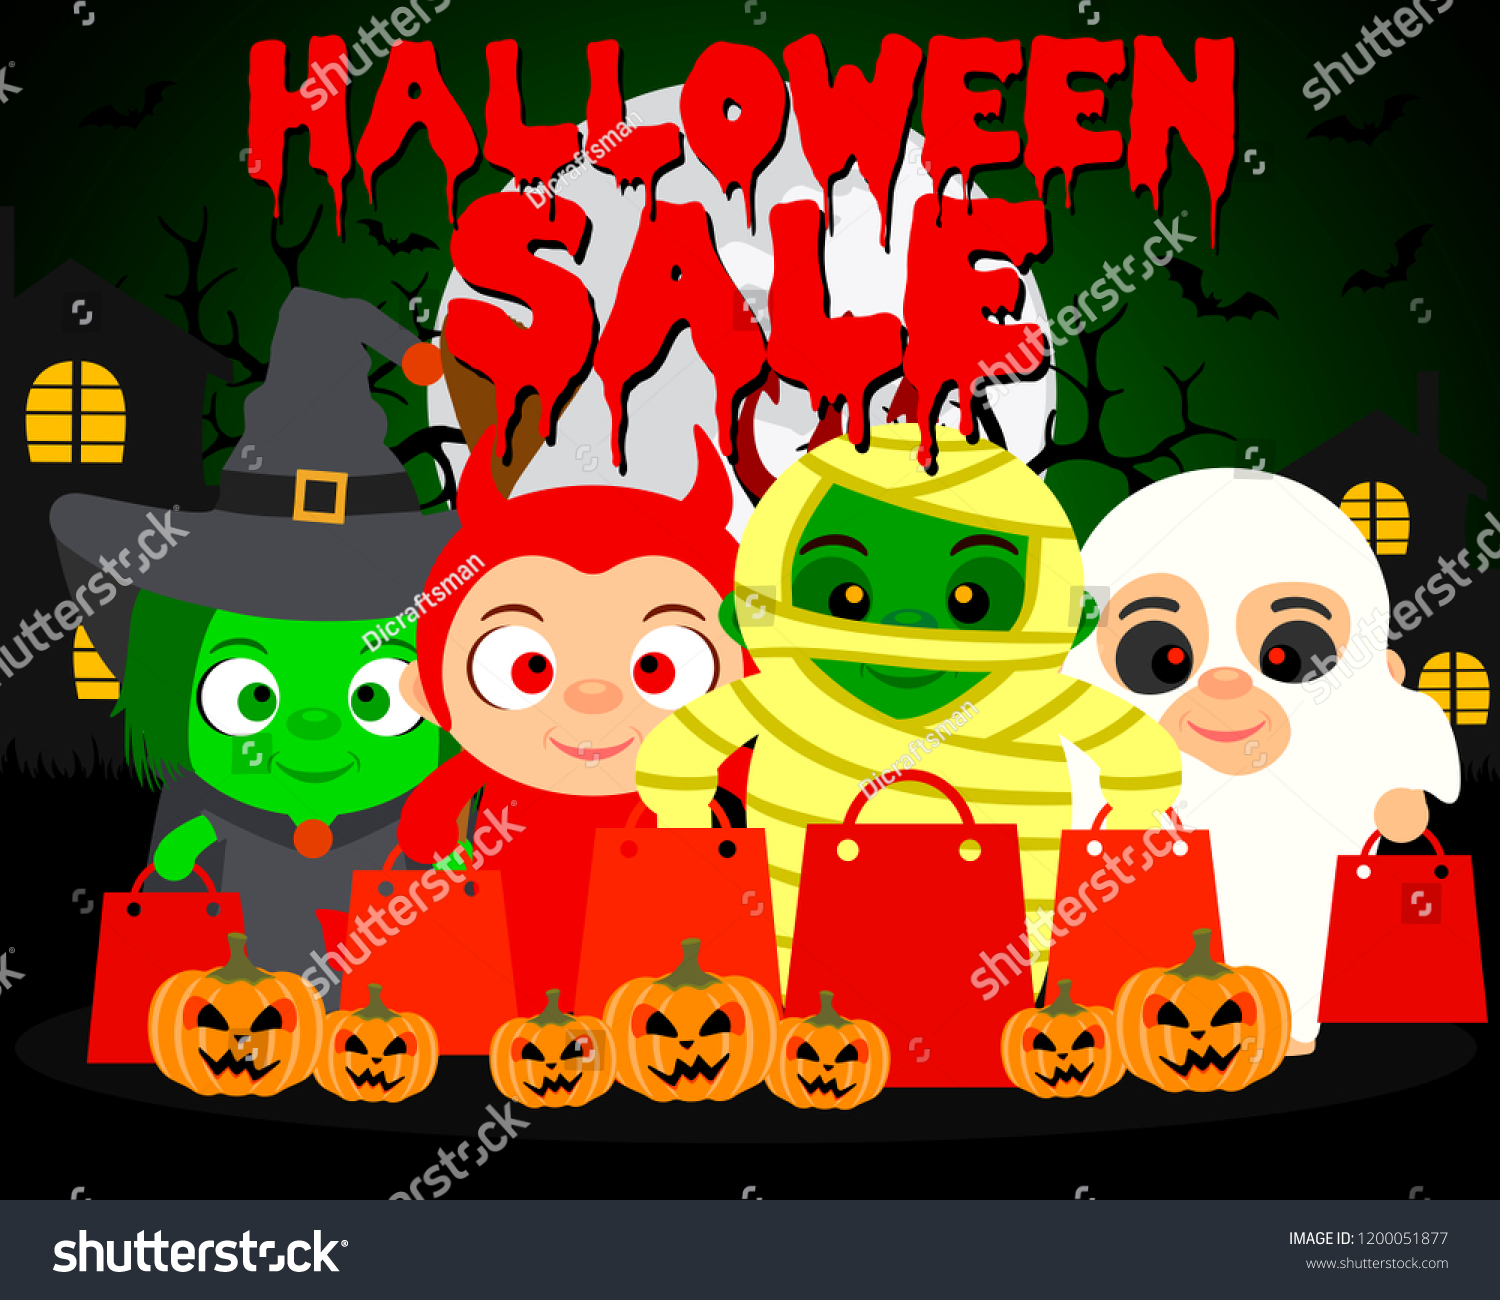 halloween sale background kids funny halloween stock vector (royalty